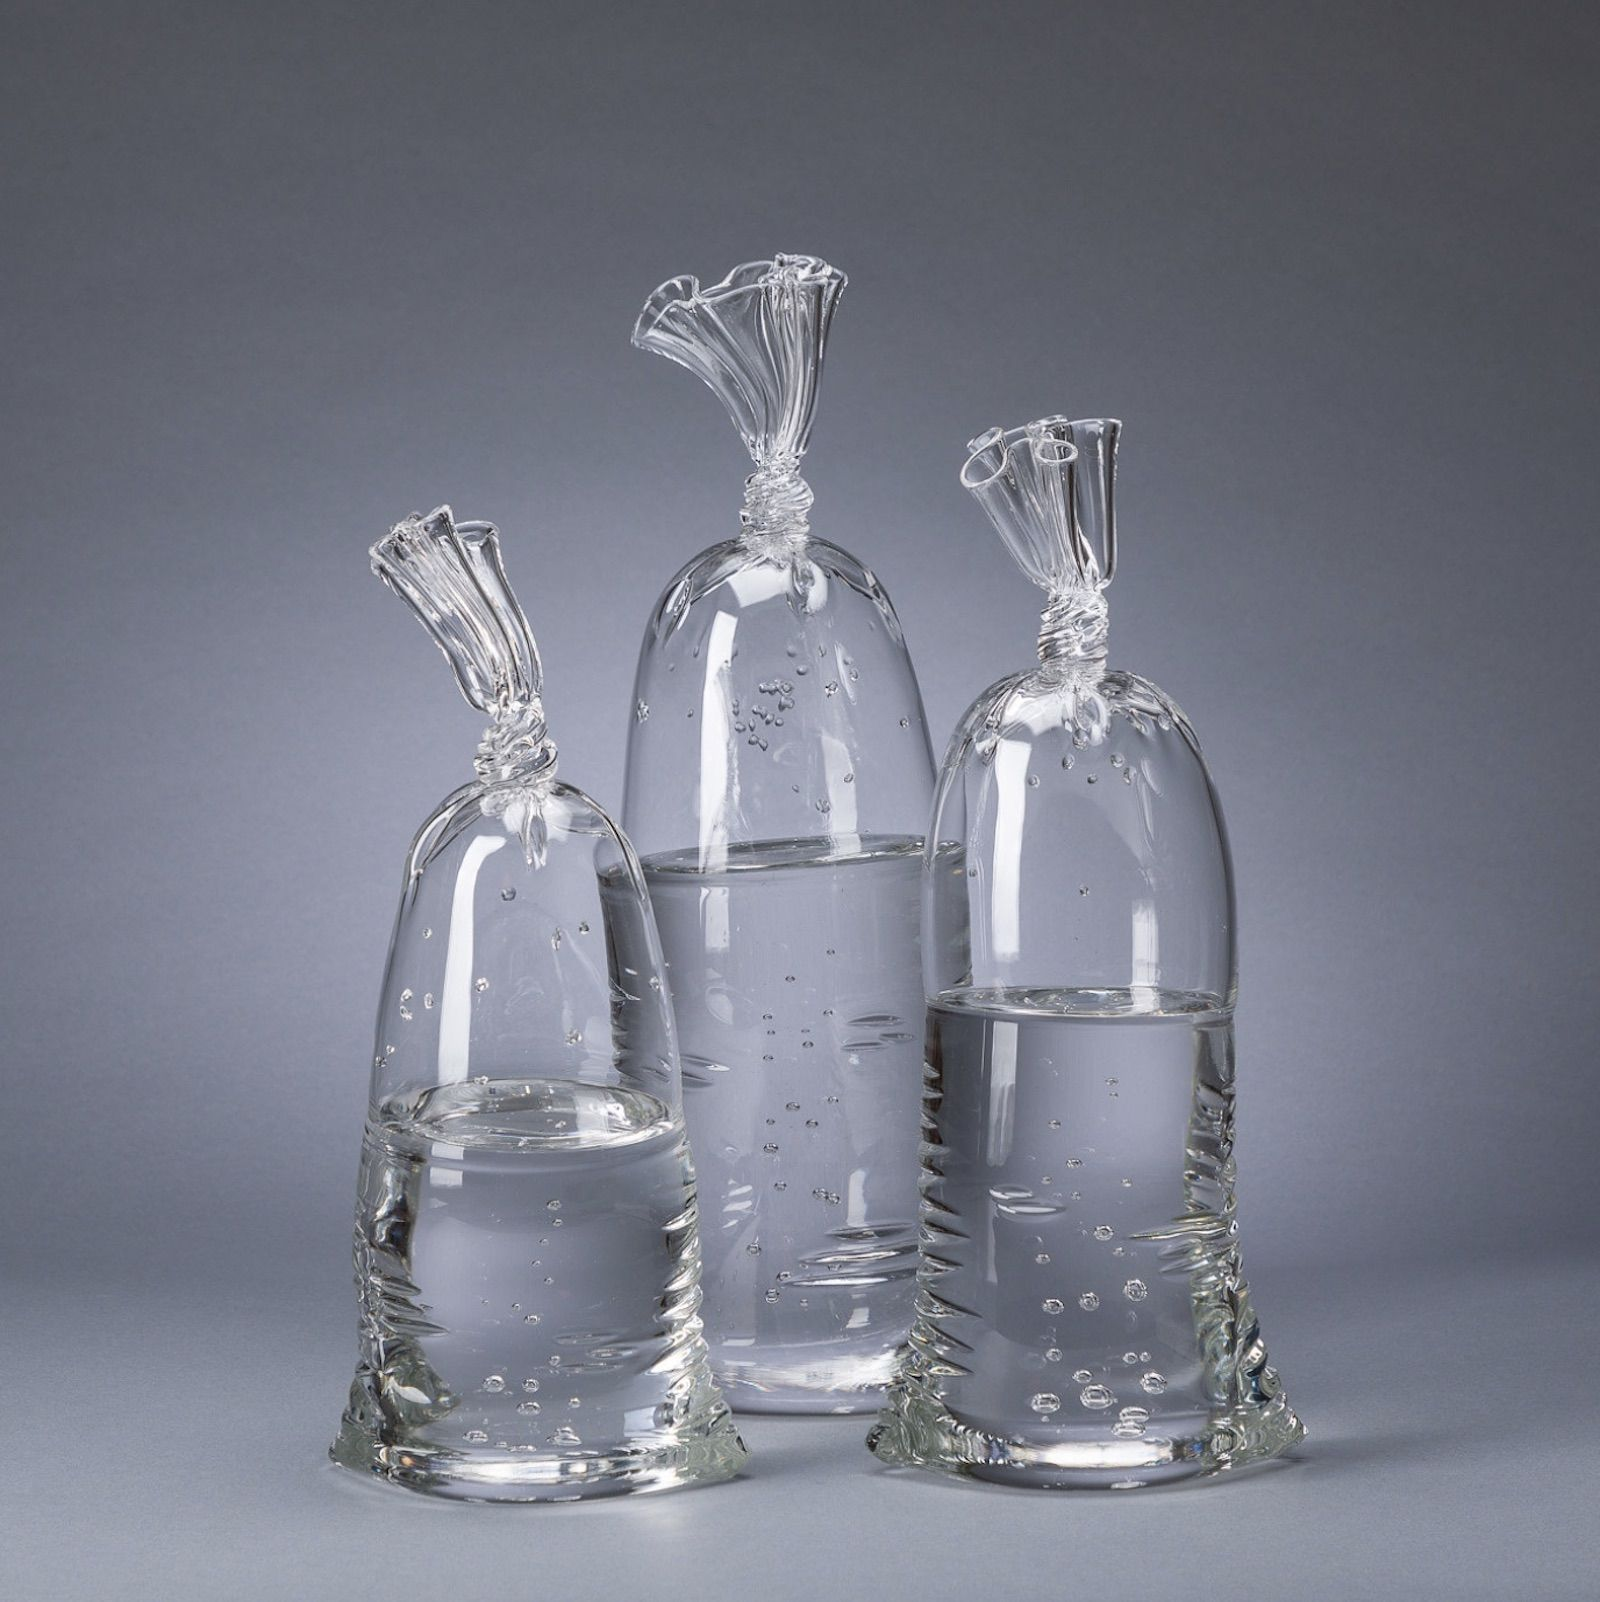 iGNANT-Design-Dylan-Martinez-Water-Bags-006